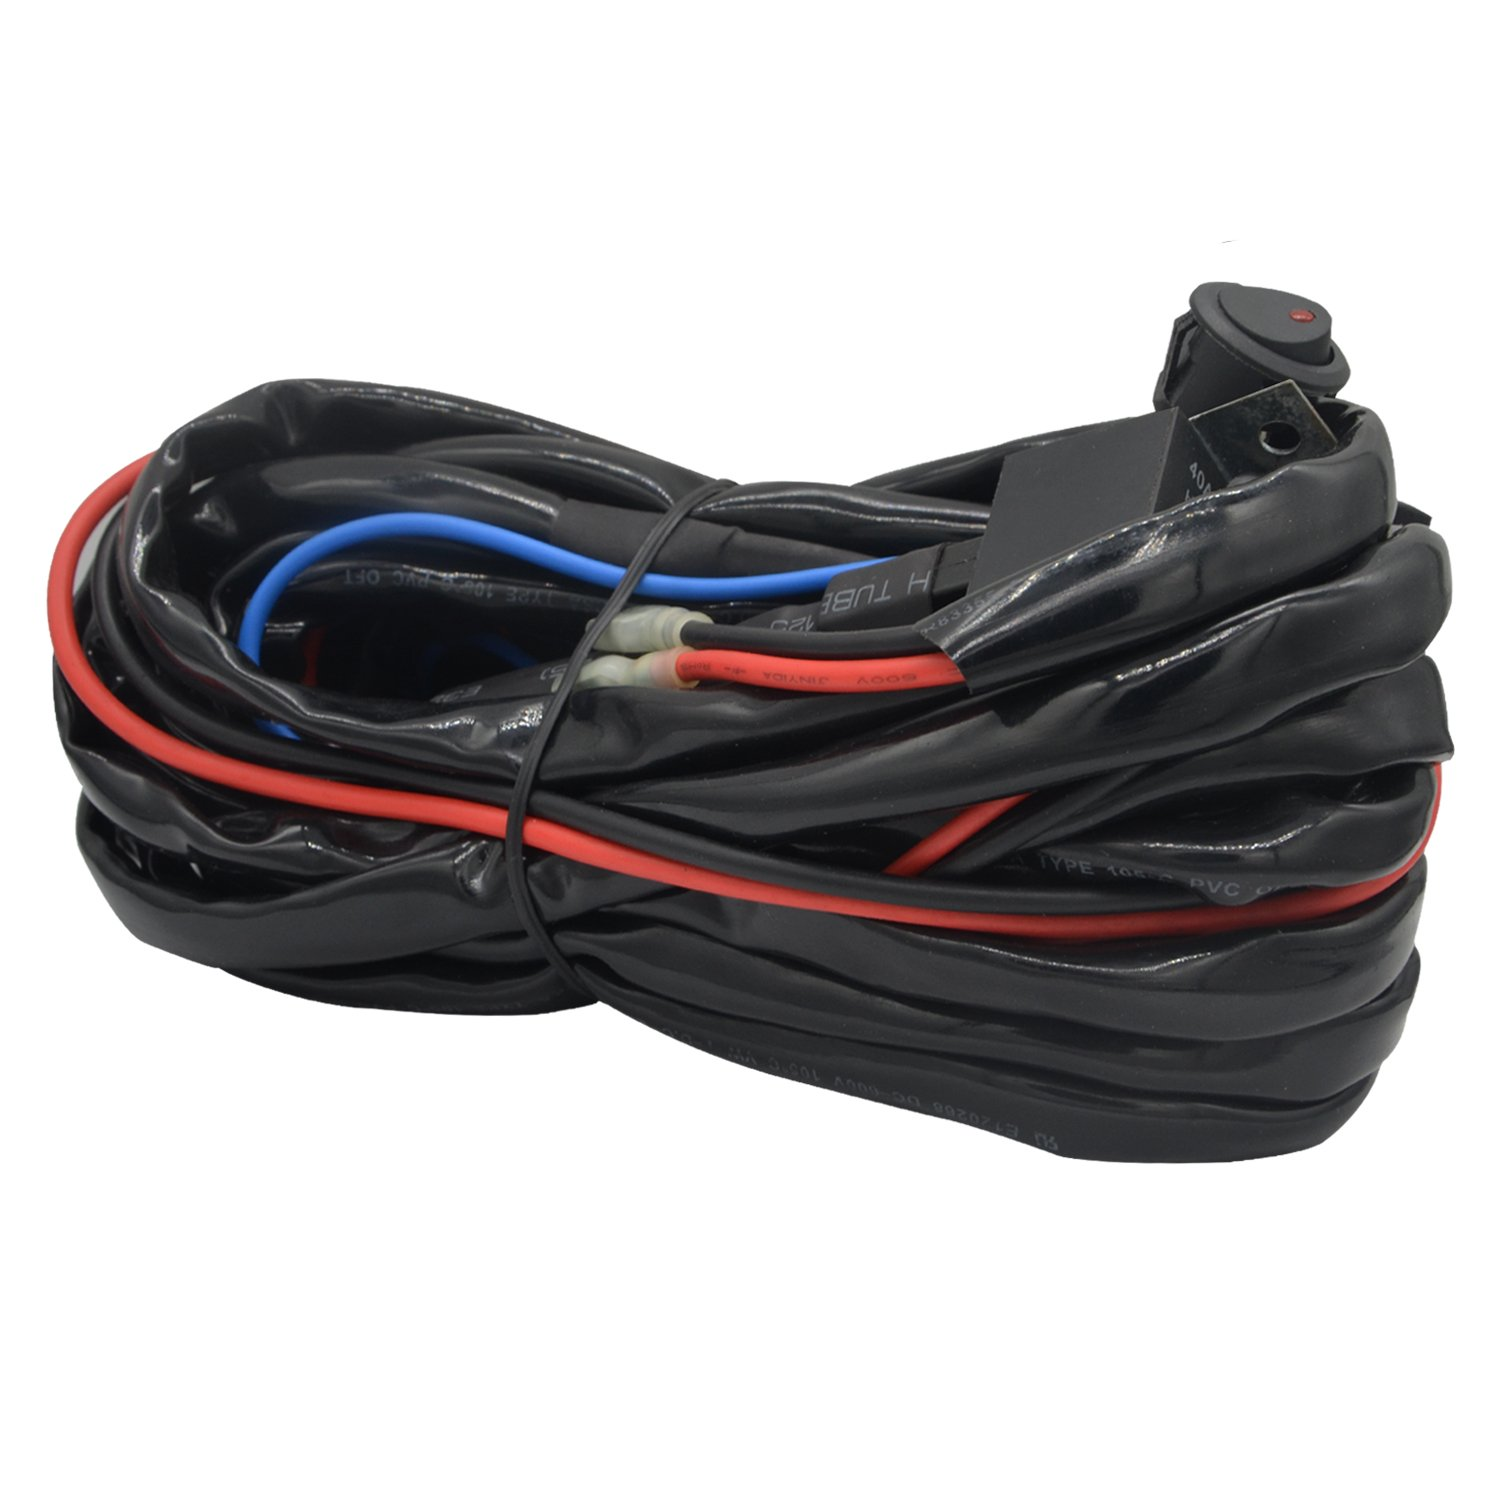 71hdbgsGjCL._SL1500_ amazon com wiring harnesses electrical automotive ksc-wa100 wiring harness at cita.asia